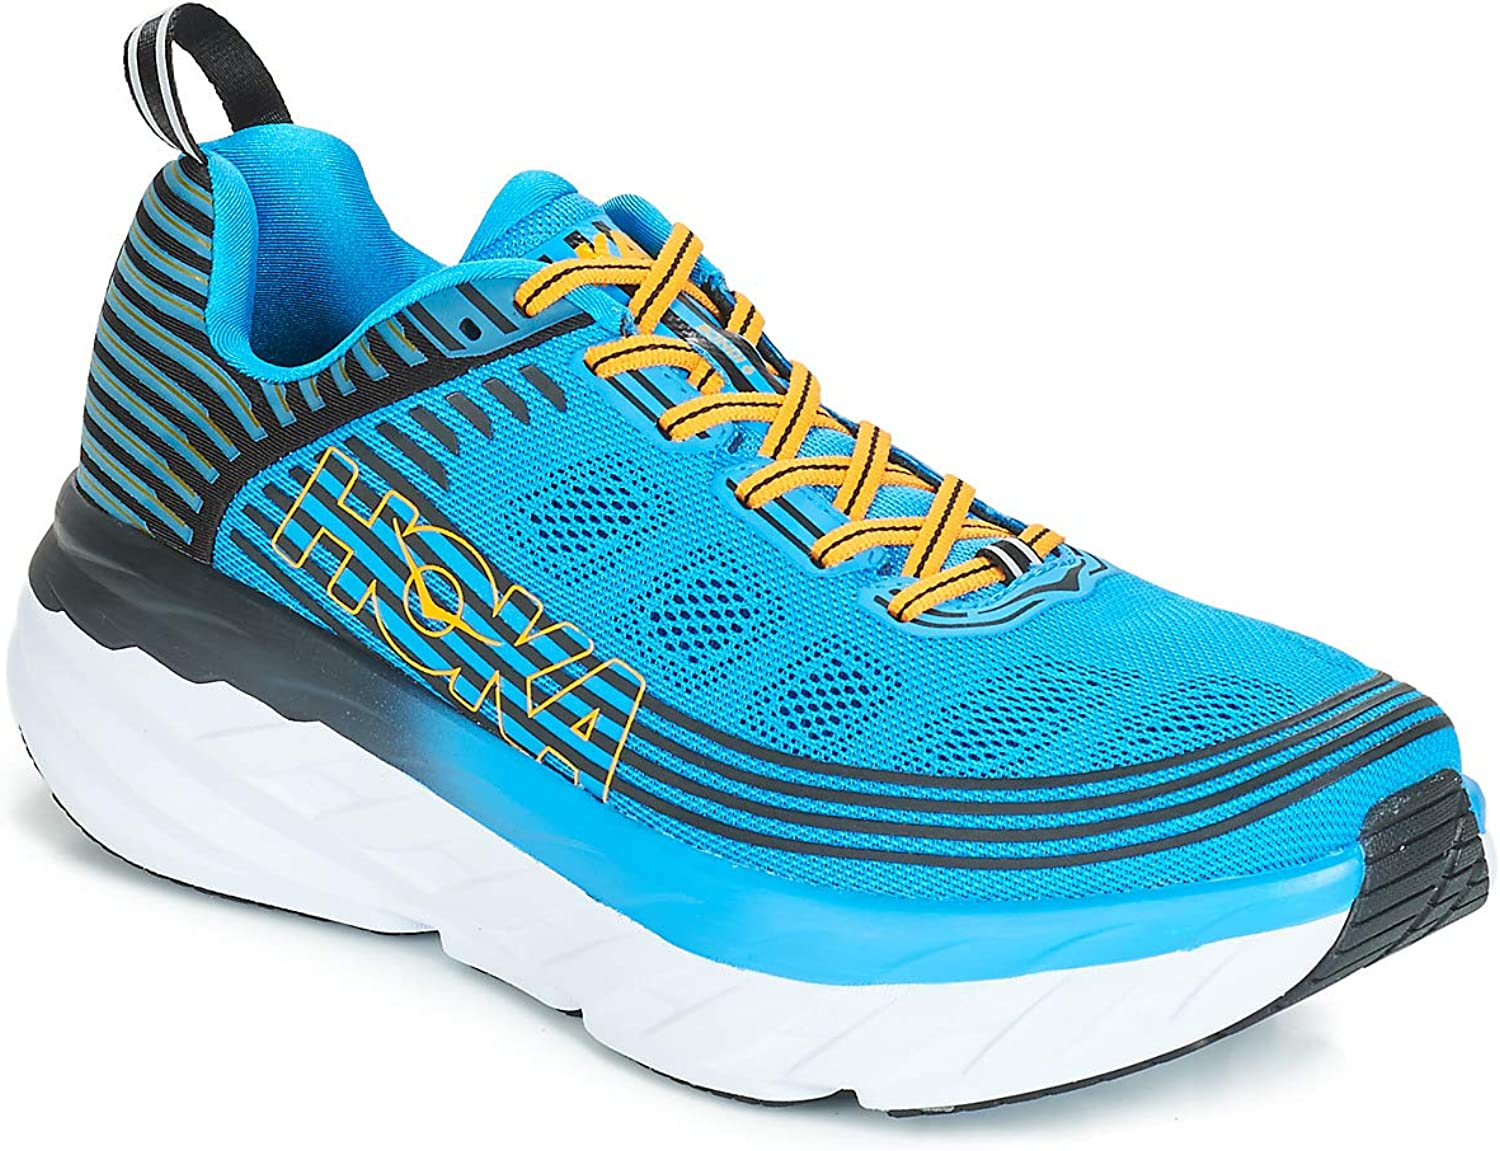 Hoka One One Bondi Bondi Bondi 6 Running Shoes Men Dresden Blue/Black 2019 Laufsport Schuhe B07DDLSF5M  f05cf5